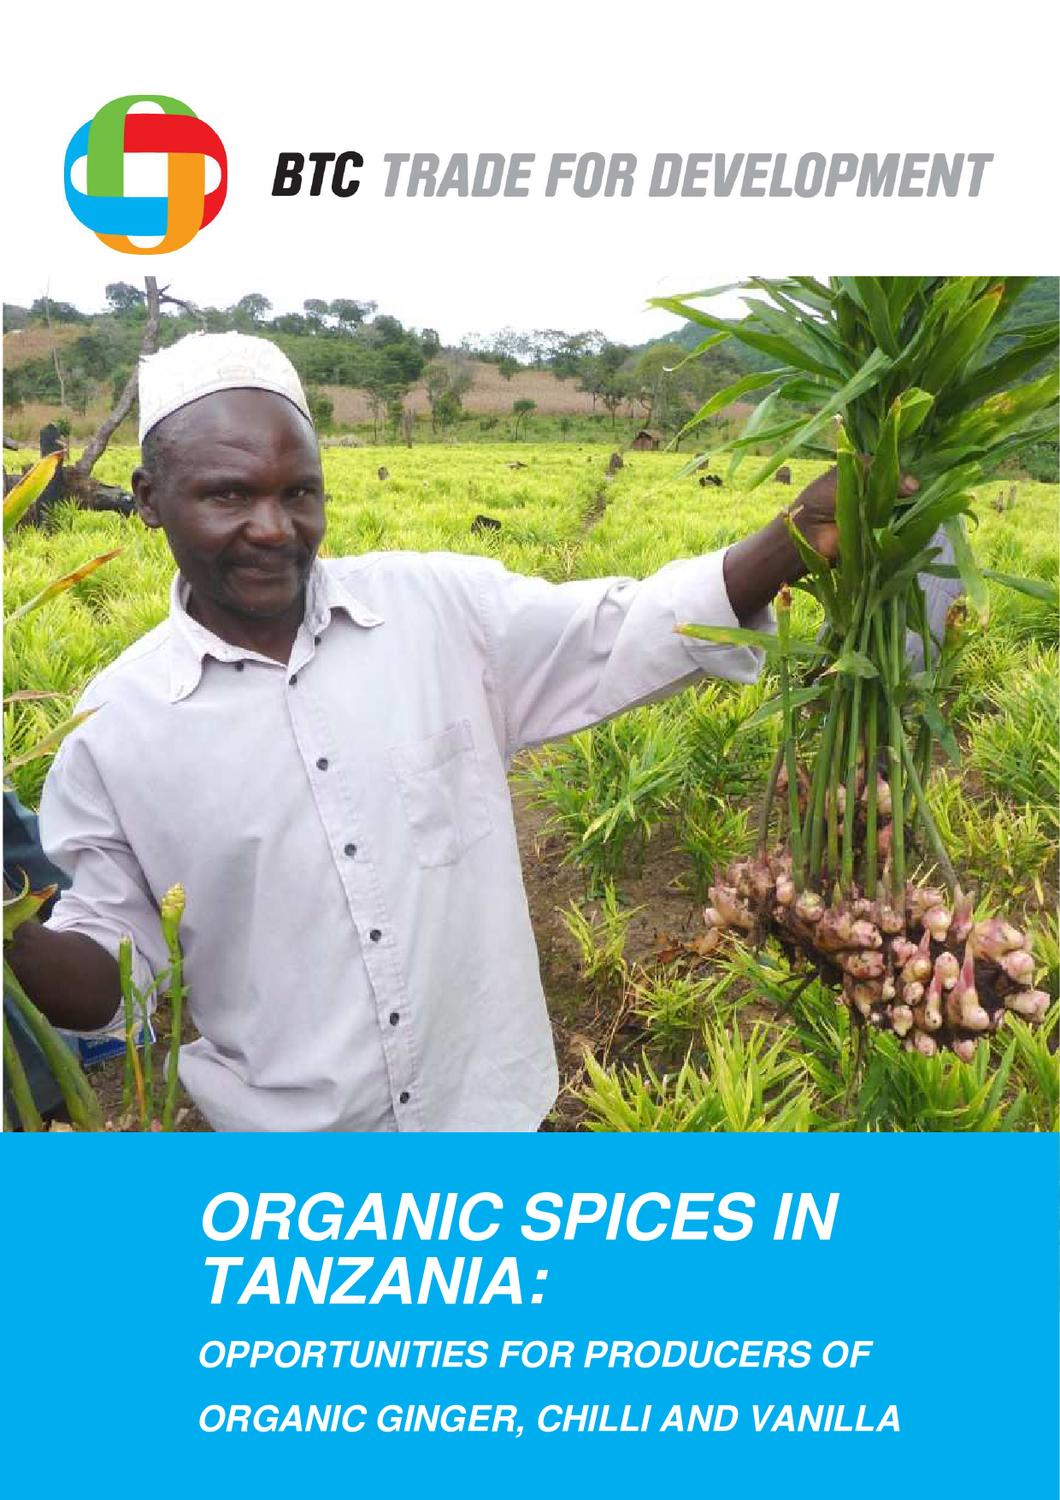 Organic spices in Tanzania: opportunities for producers of